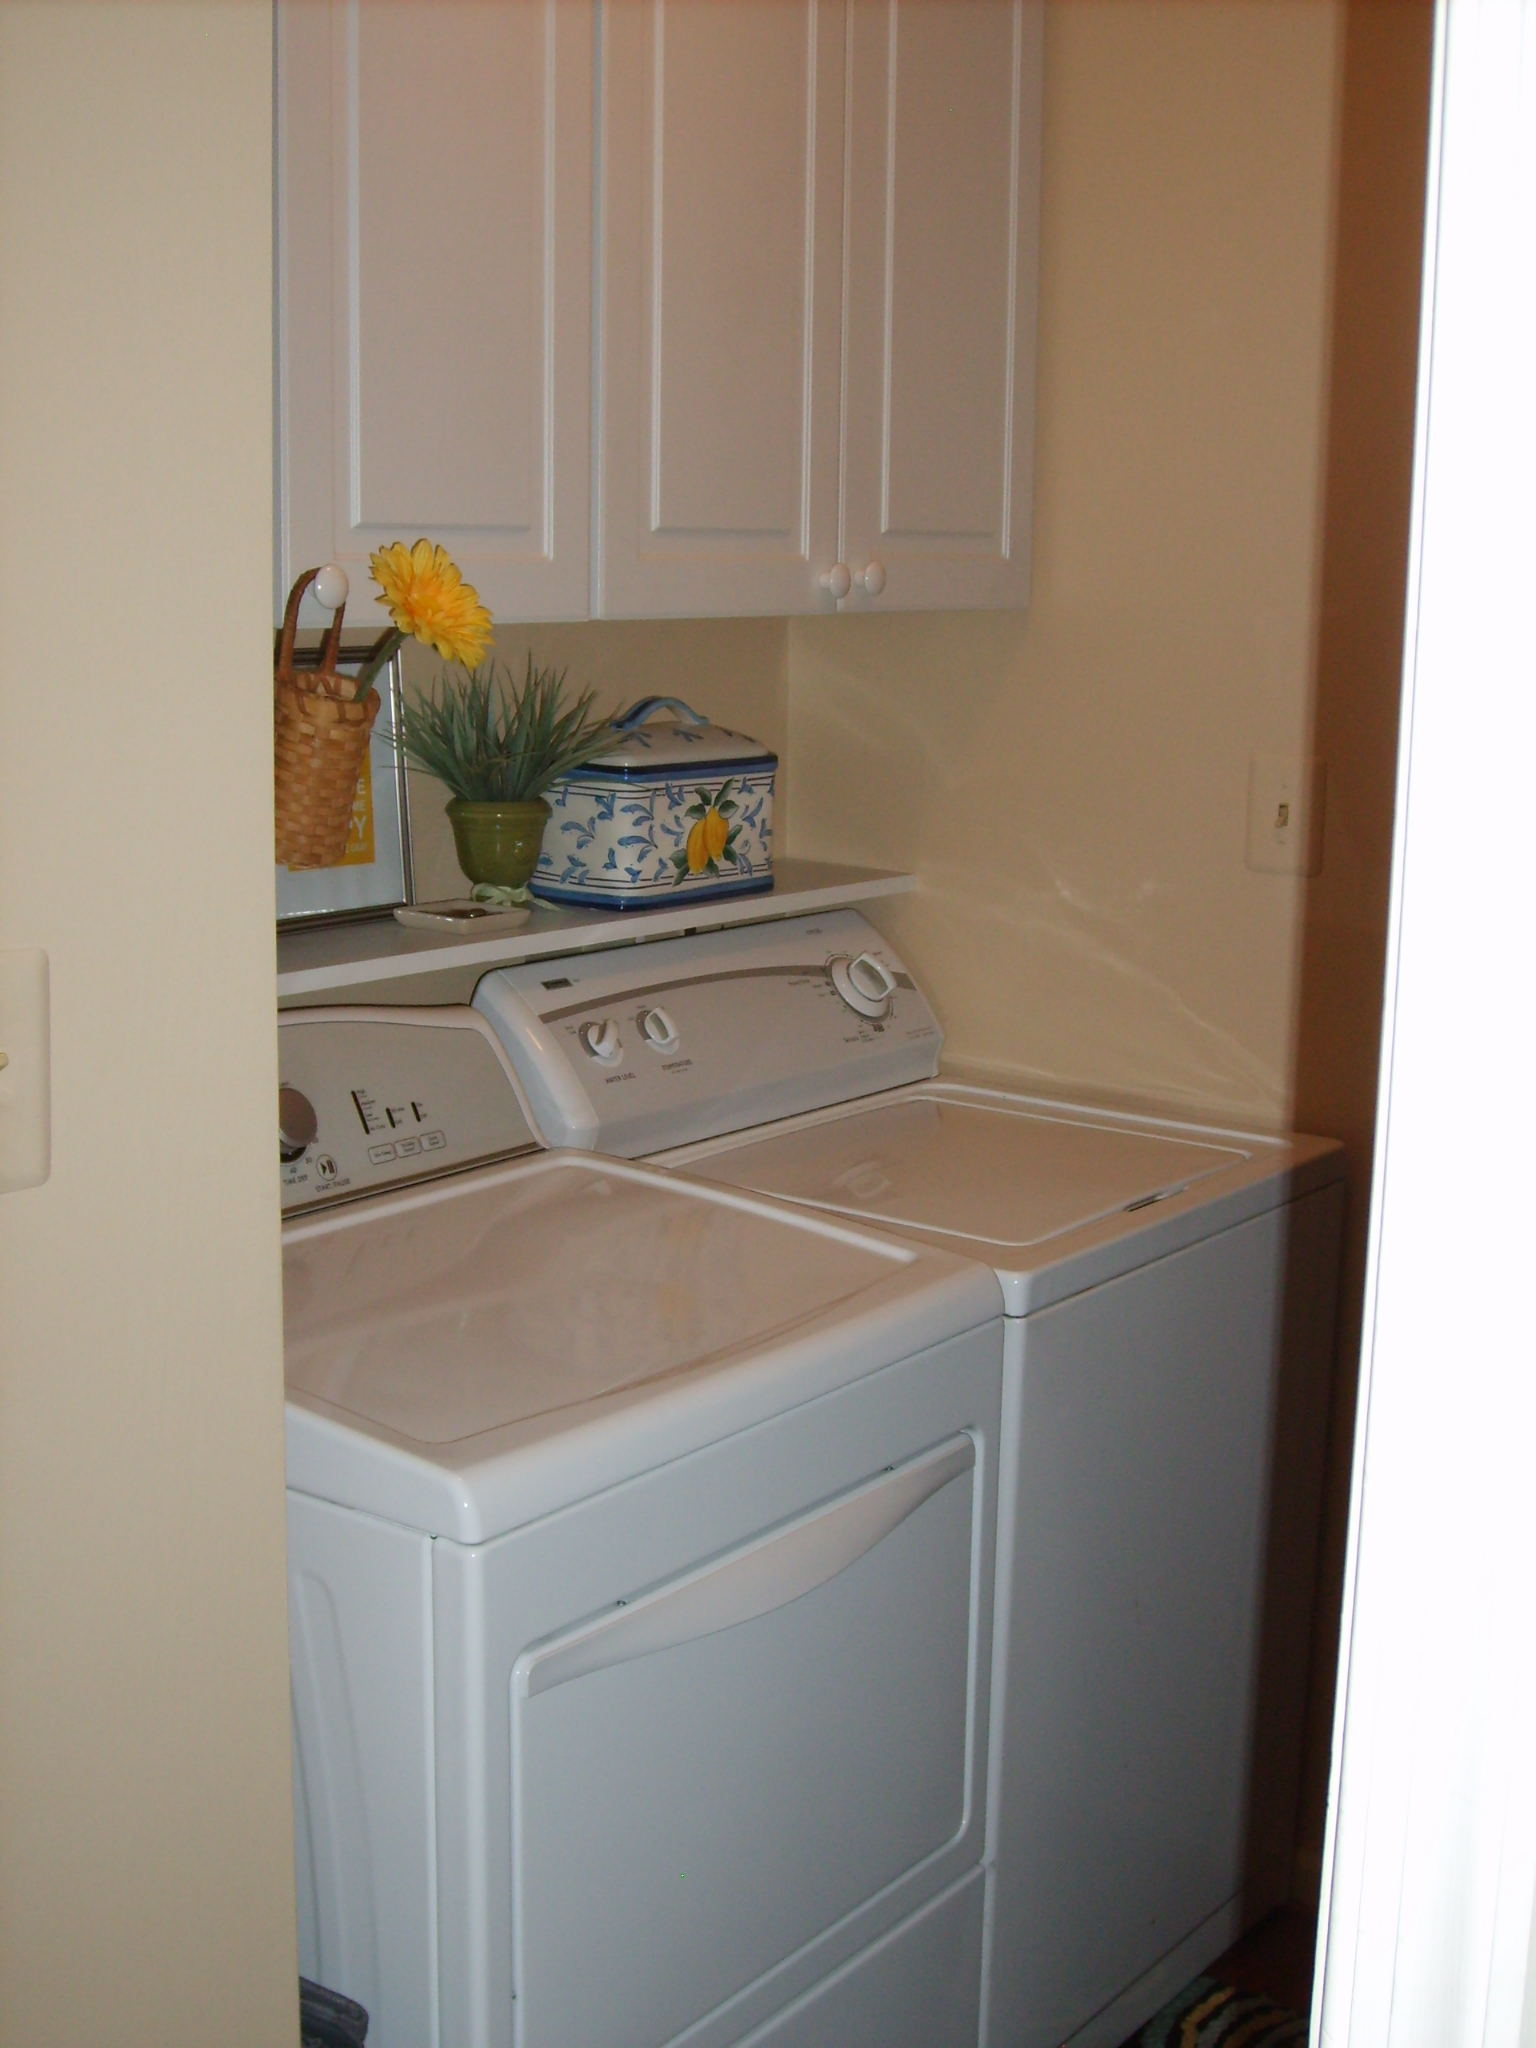 We Recently Finished This Project Where We Added A Dormer To The Home: My Inspired Laundry Room – Part 1